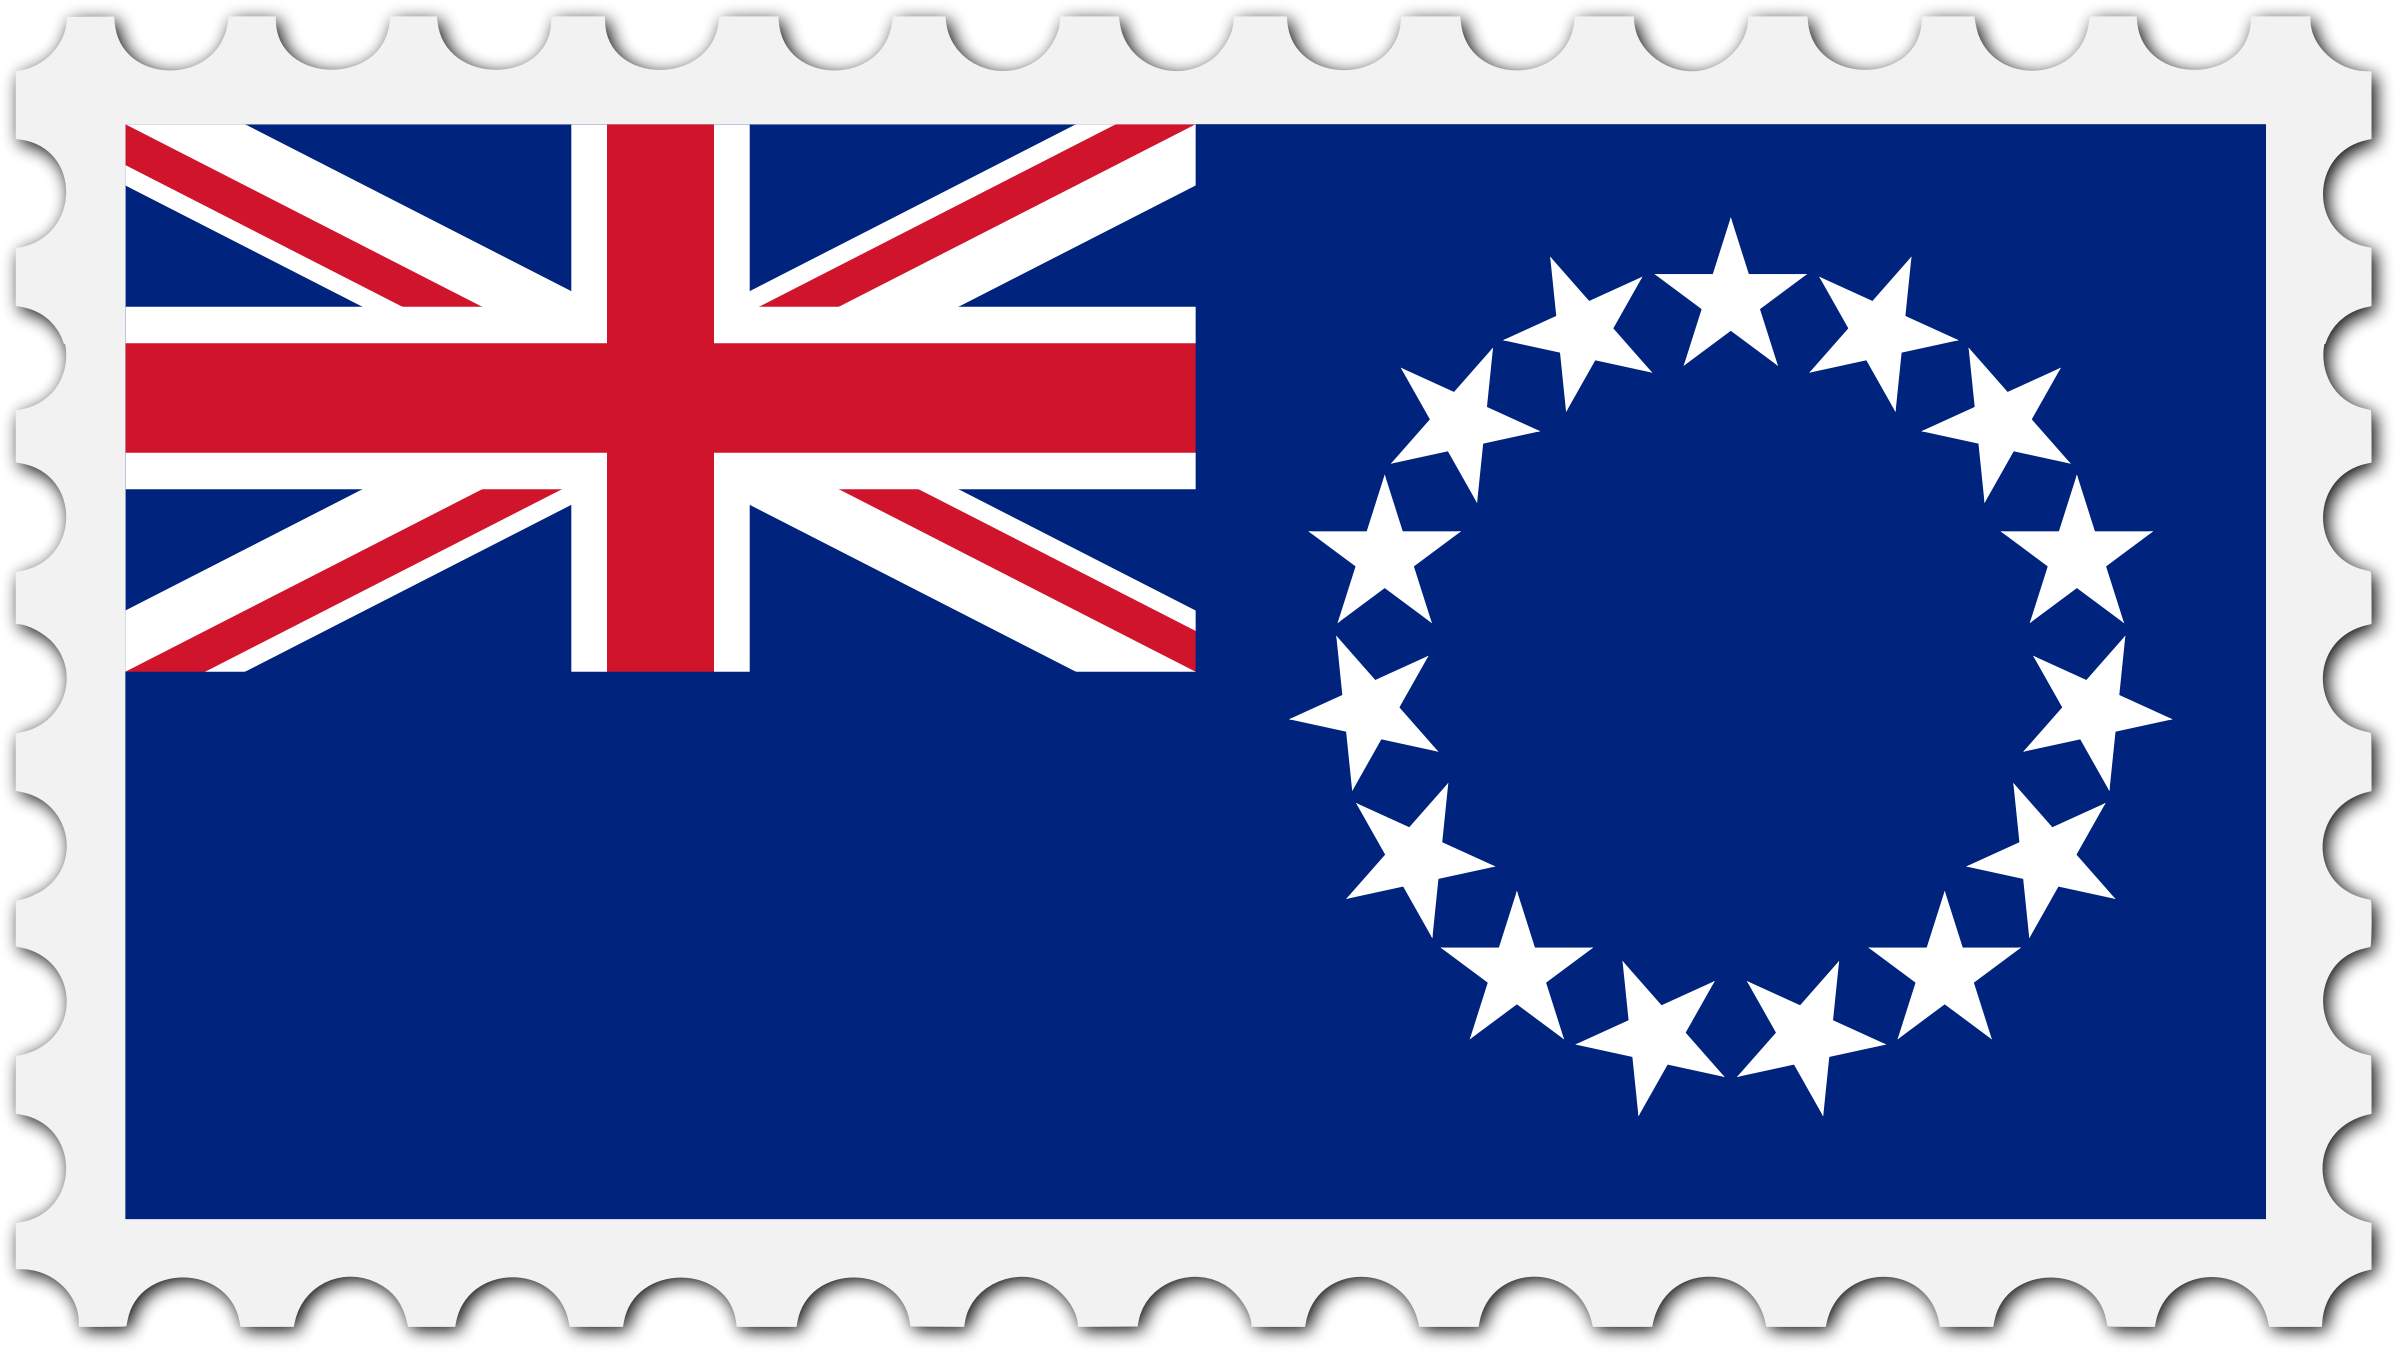 Cook Islands flag stamp by Firkin